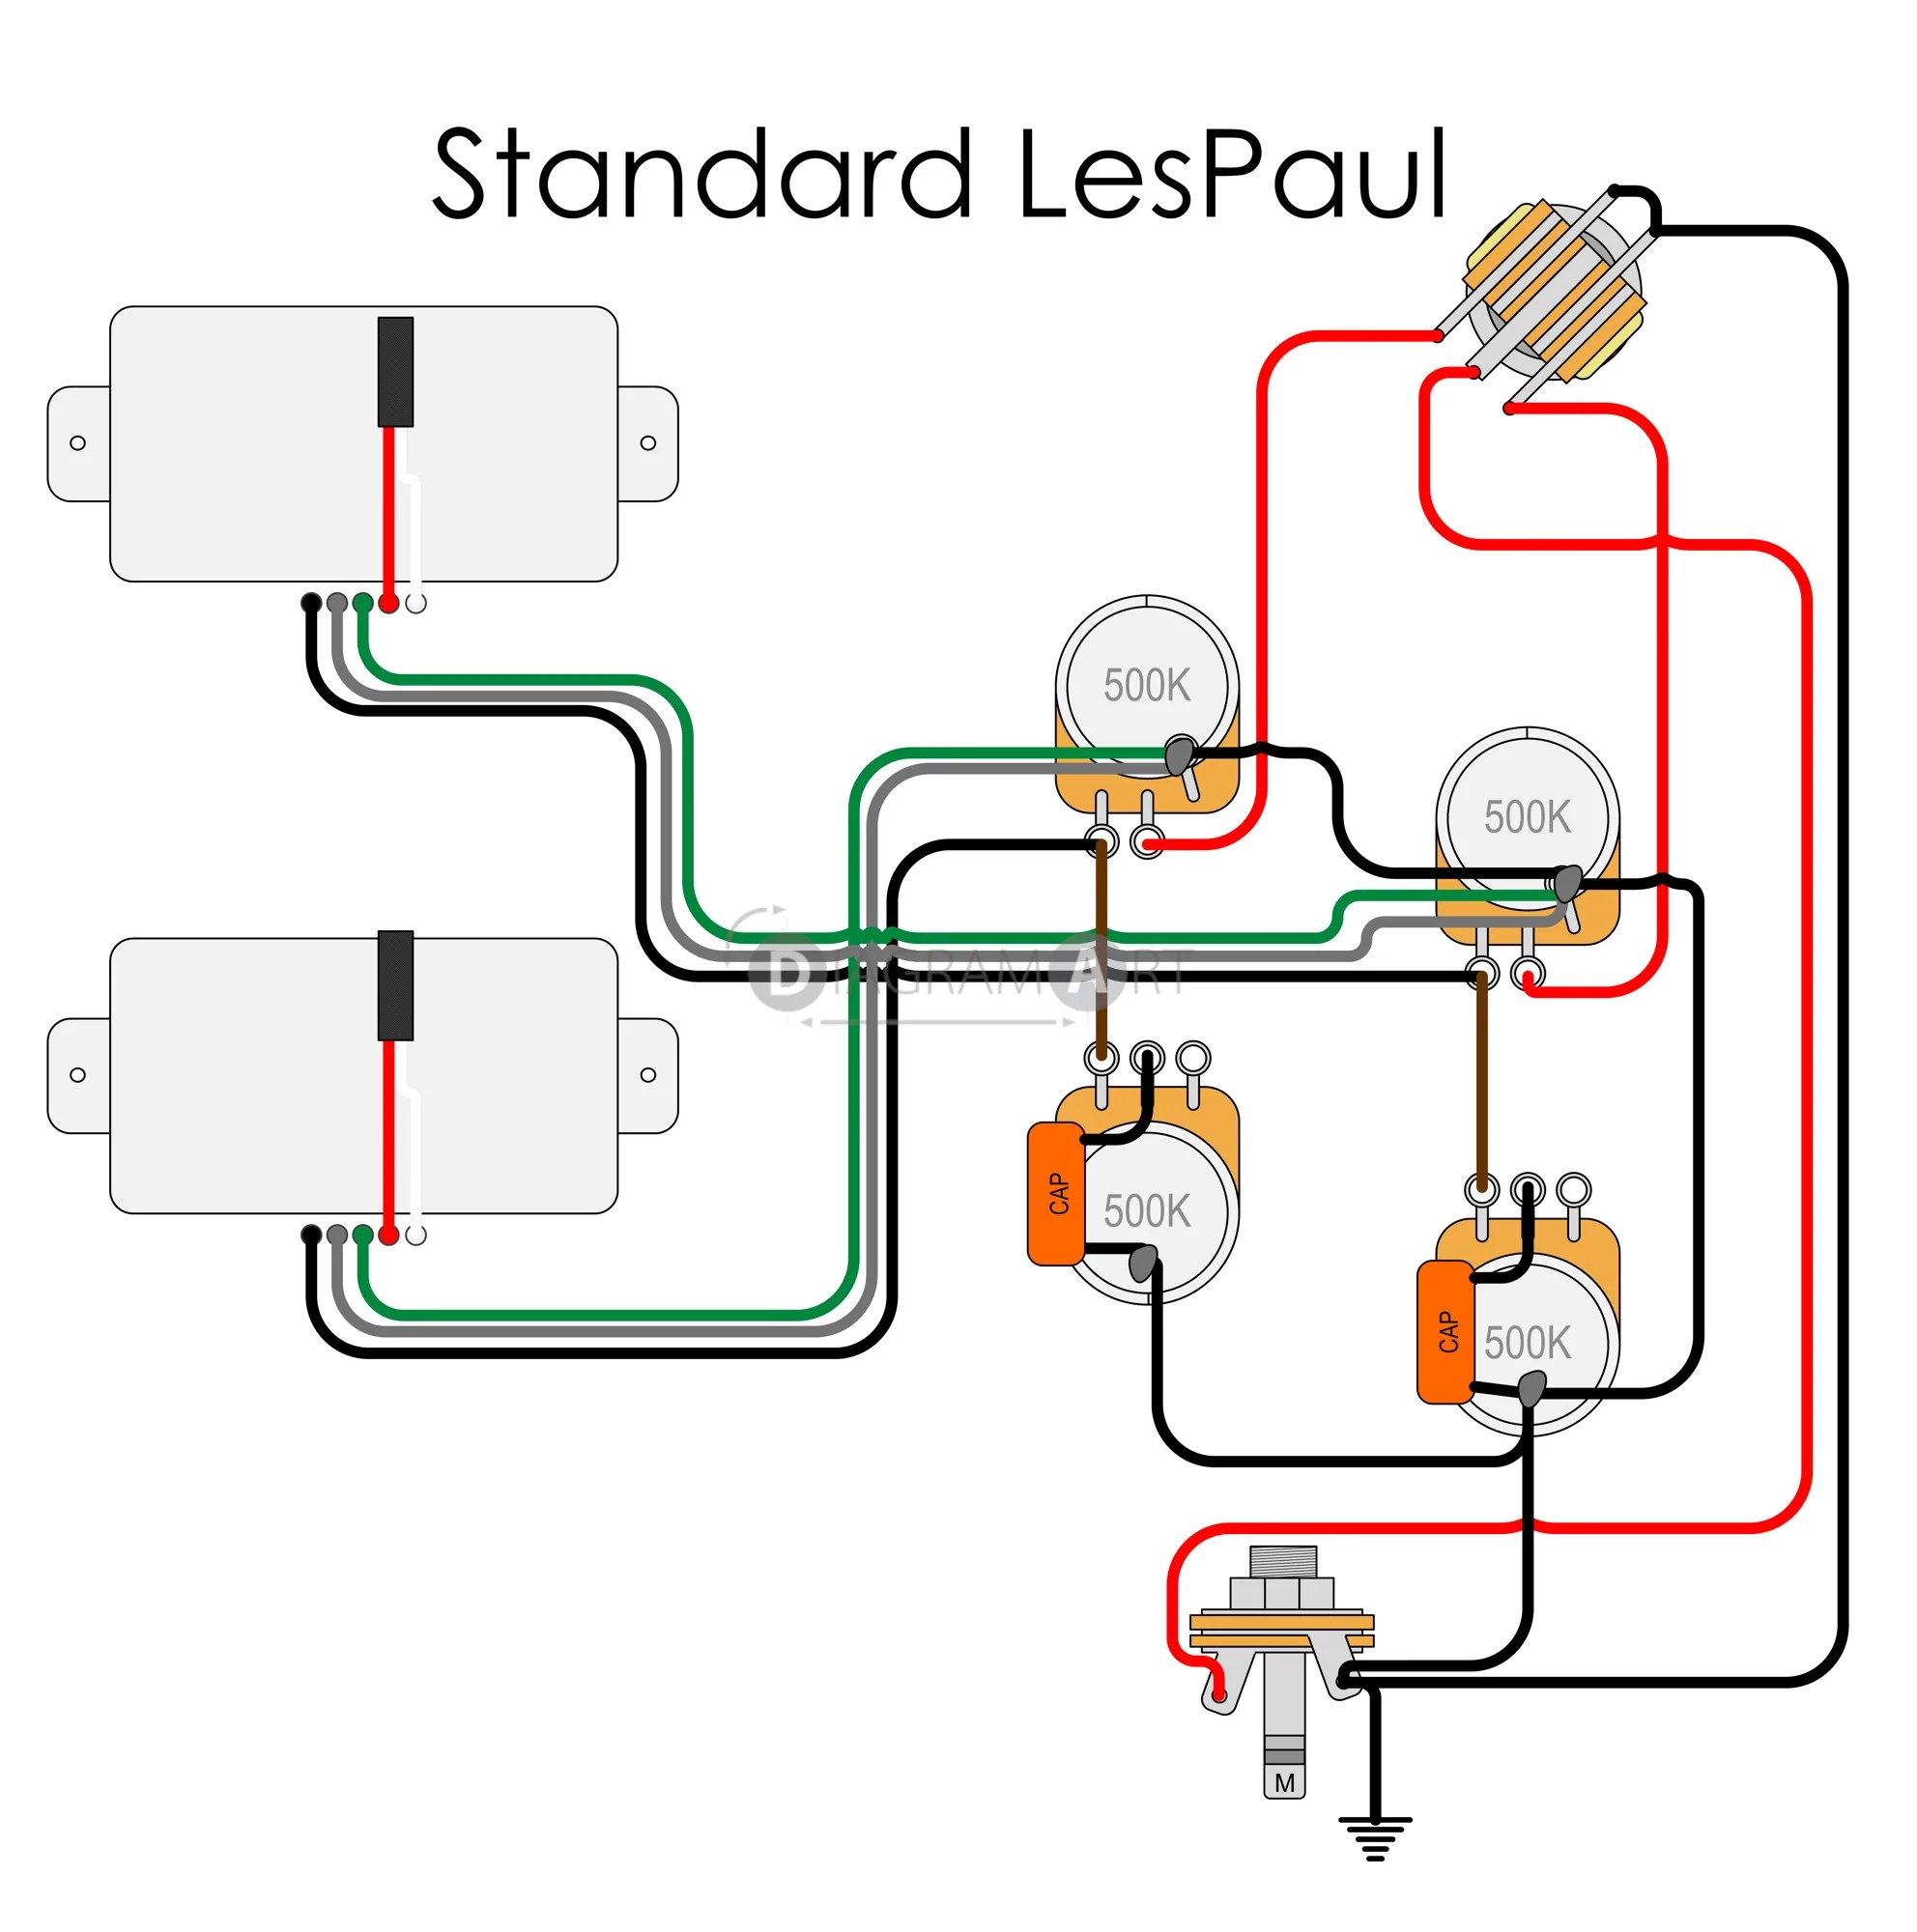 medium resolution of electric guitar wiring standard lespaul electric circuit diagramart vintage les paul wiring diagram electric